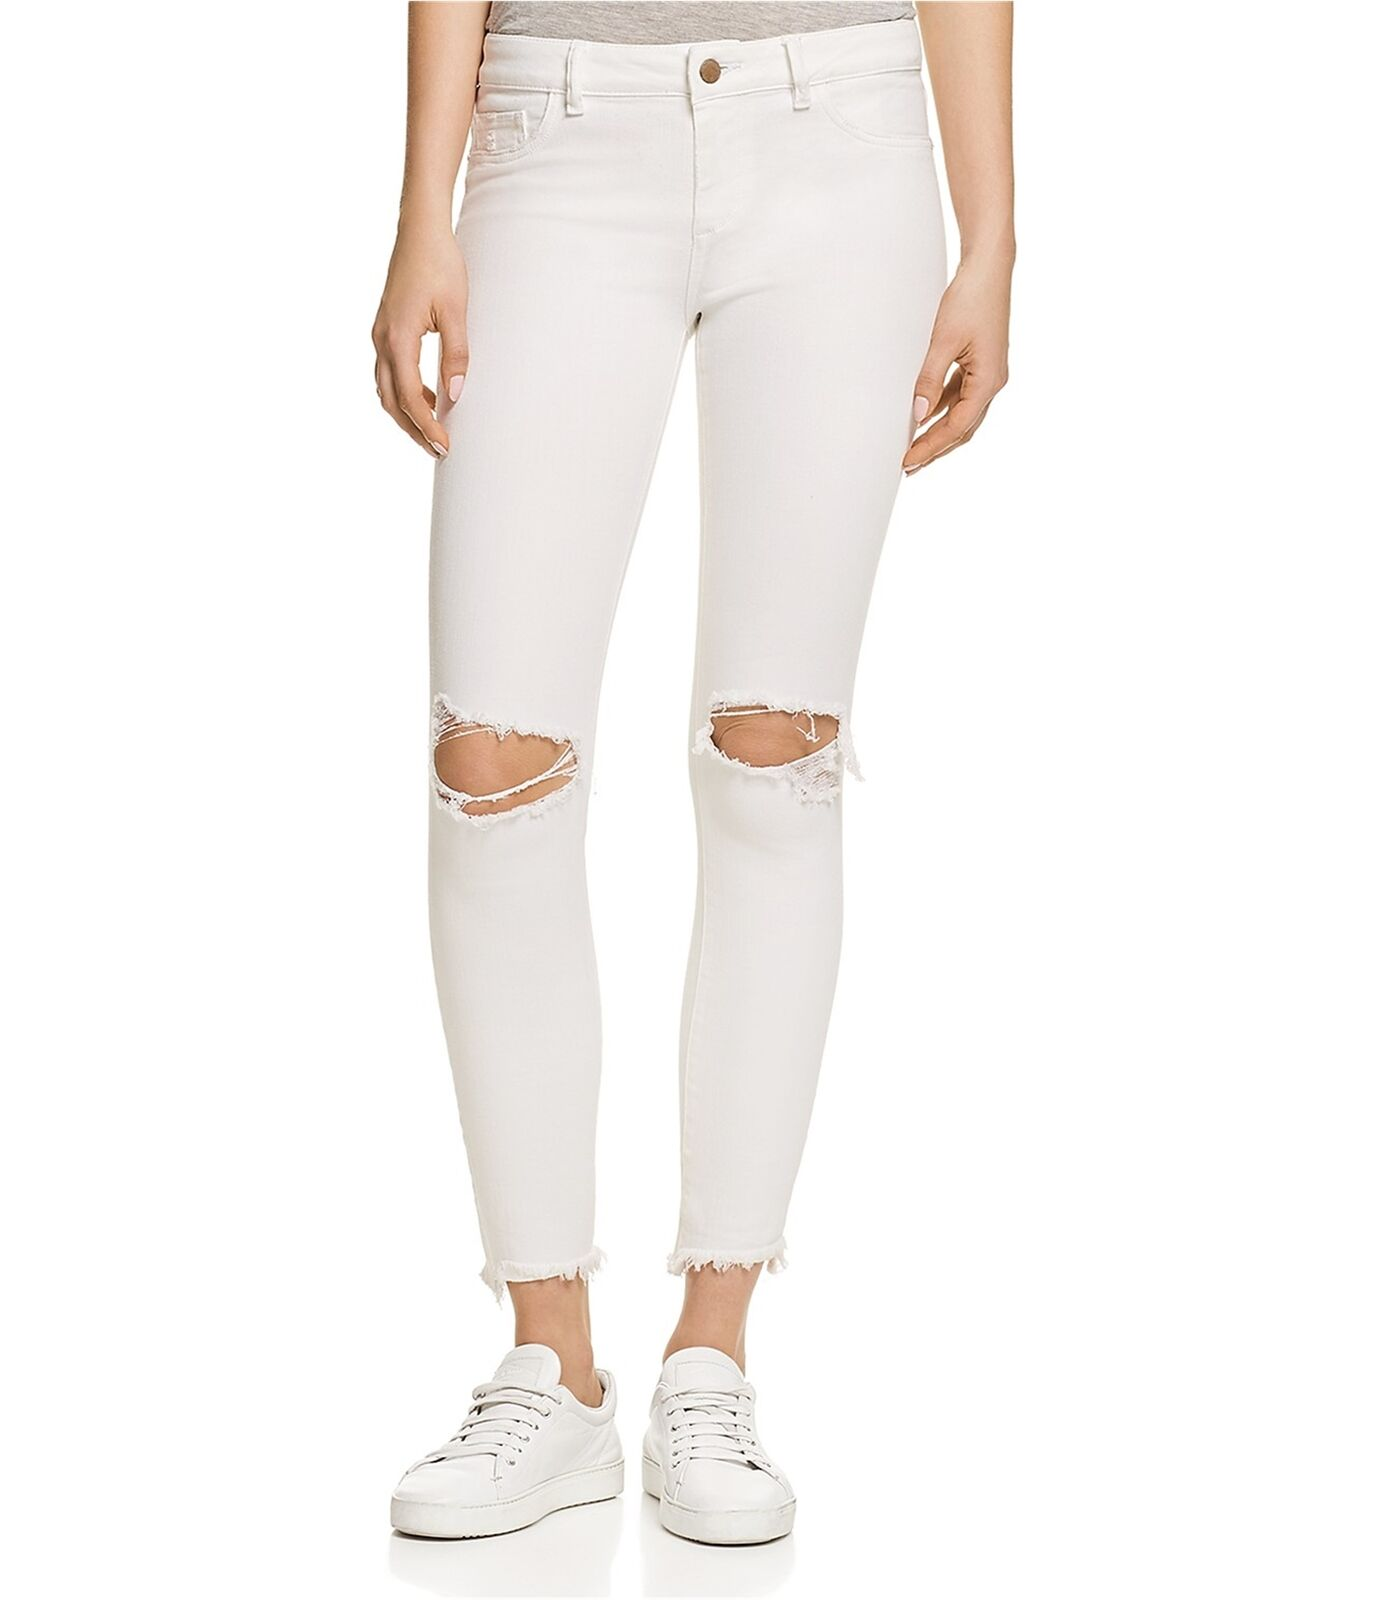 DL1961 Womens Margaux Instasculpt Ankle Skinny Fit Jeans white 29x27